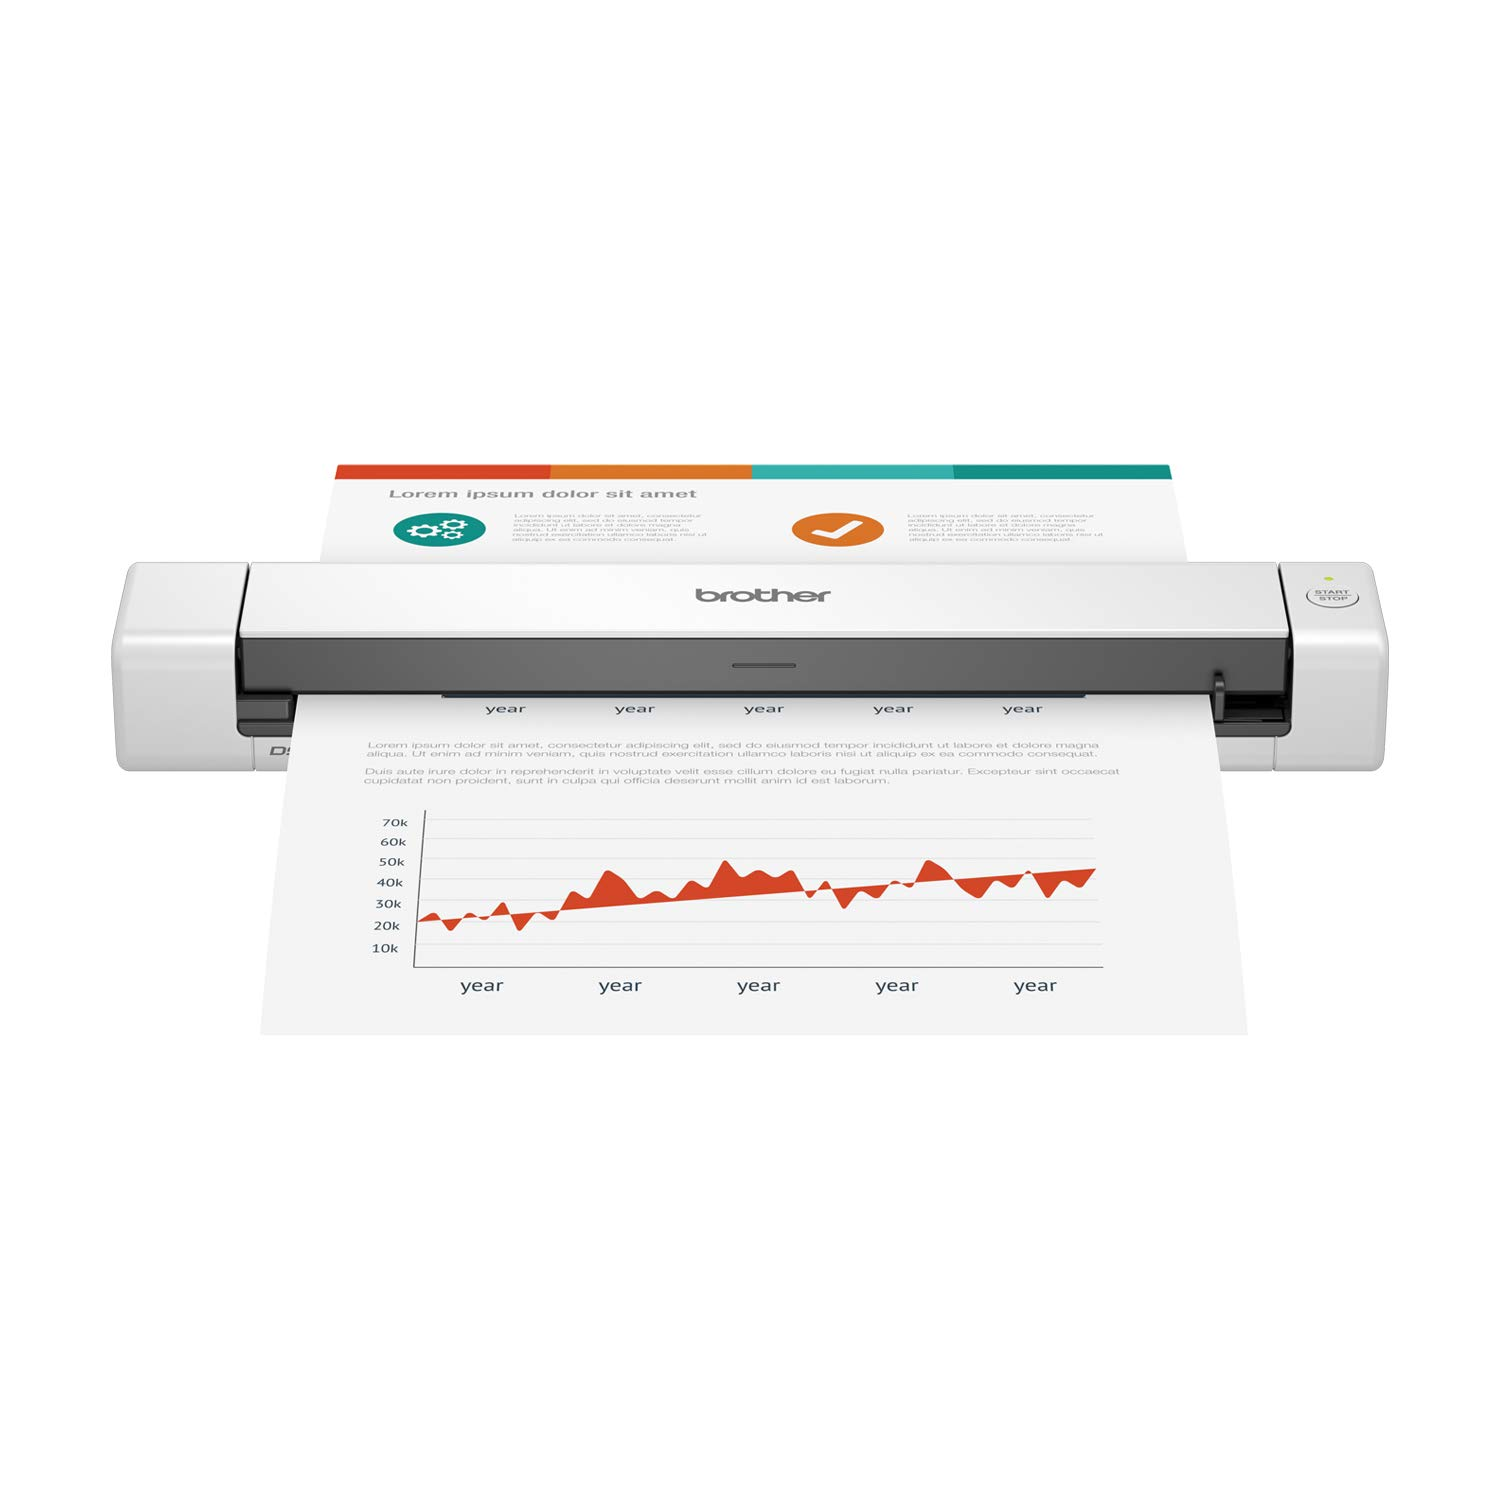 Compact mobile document scanner